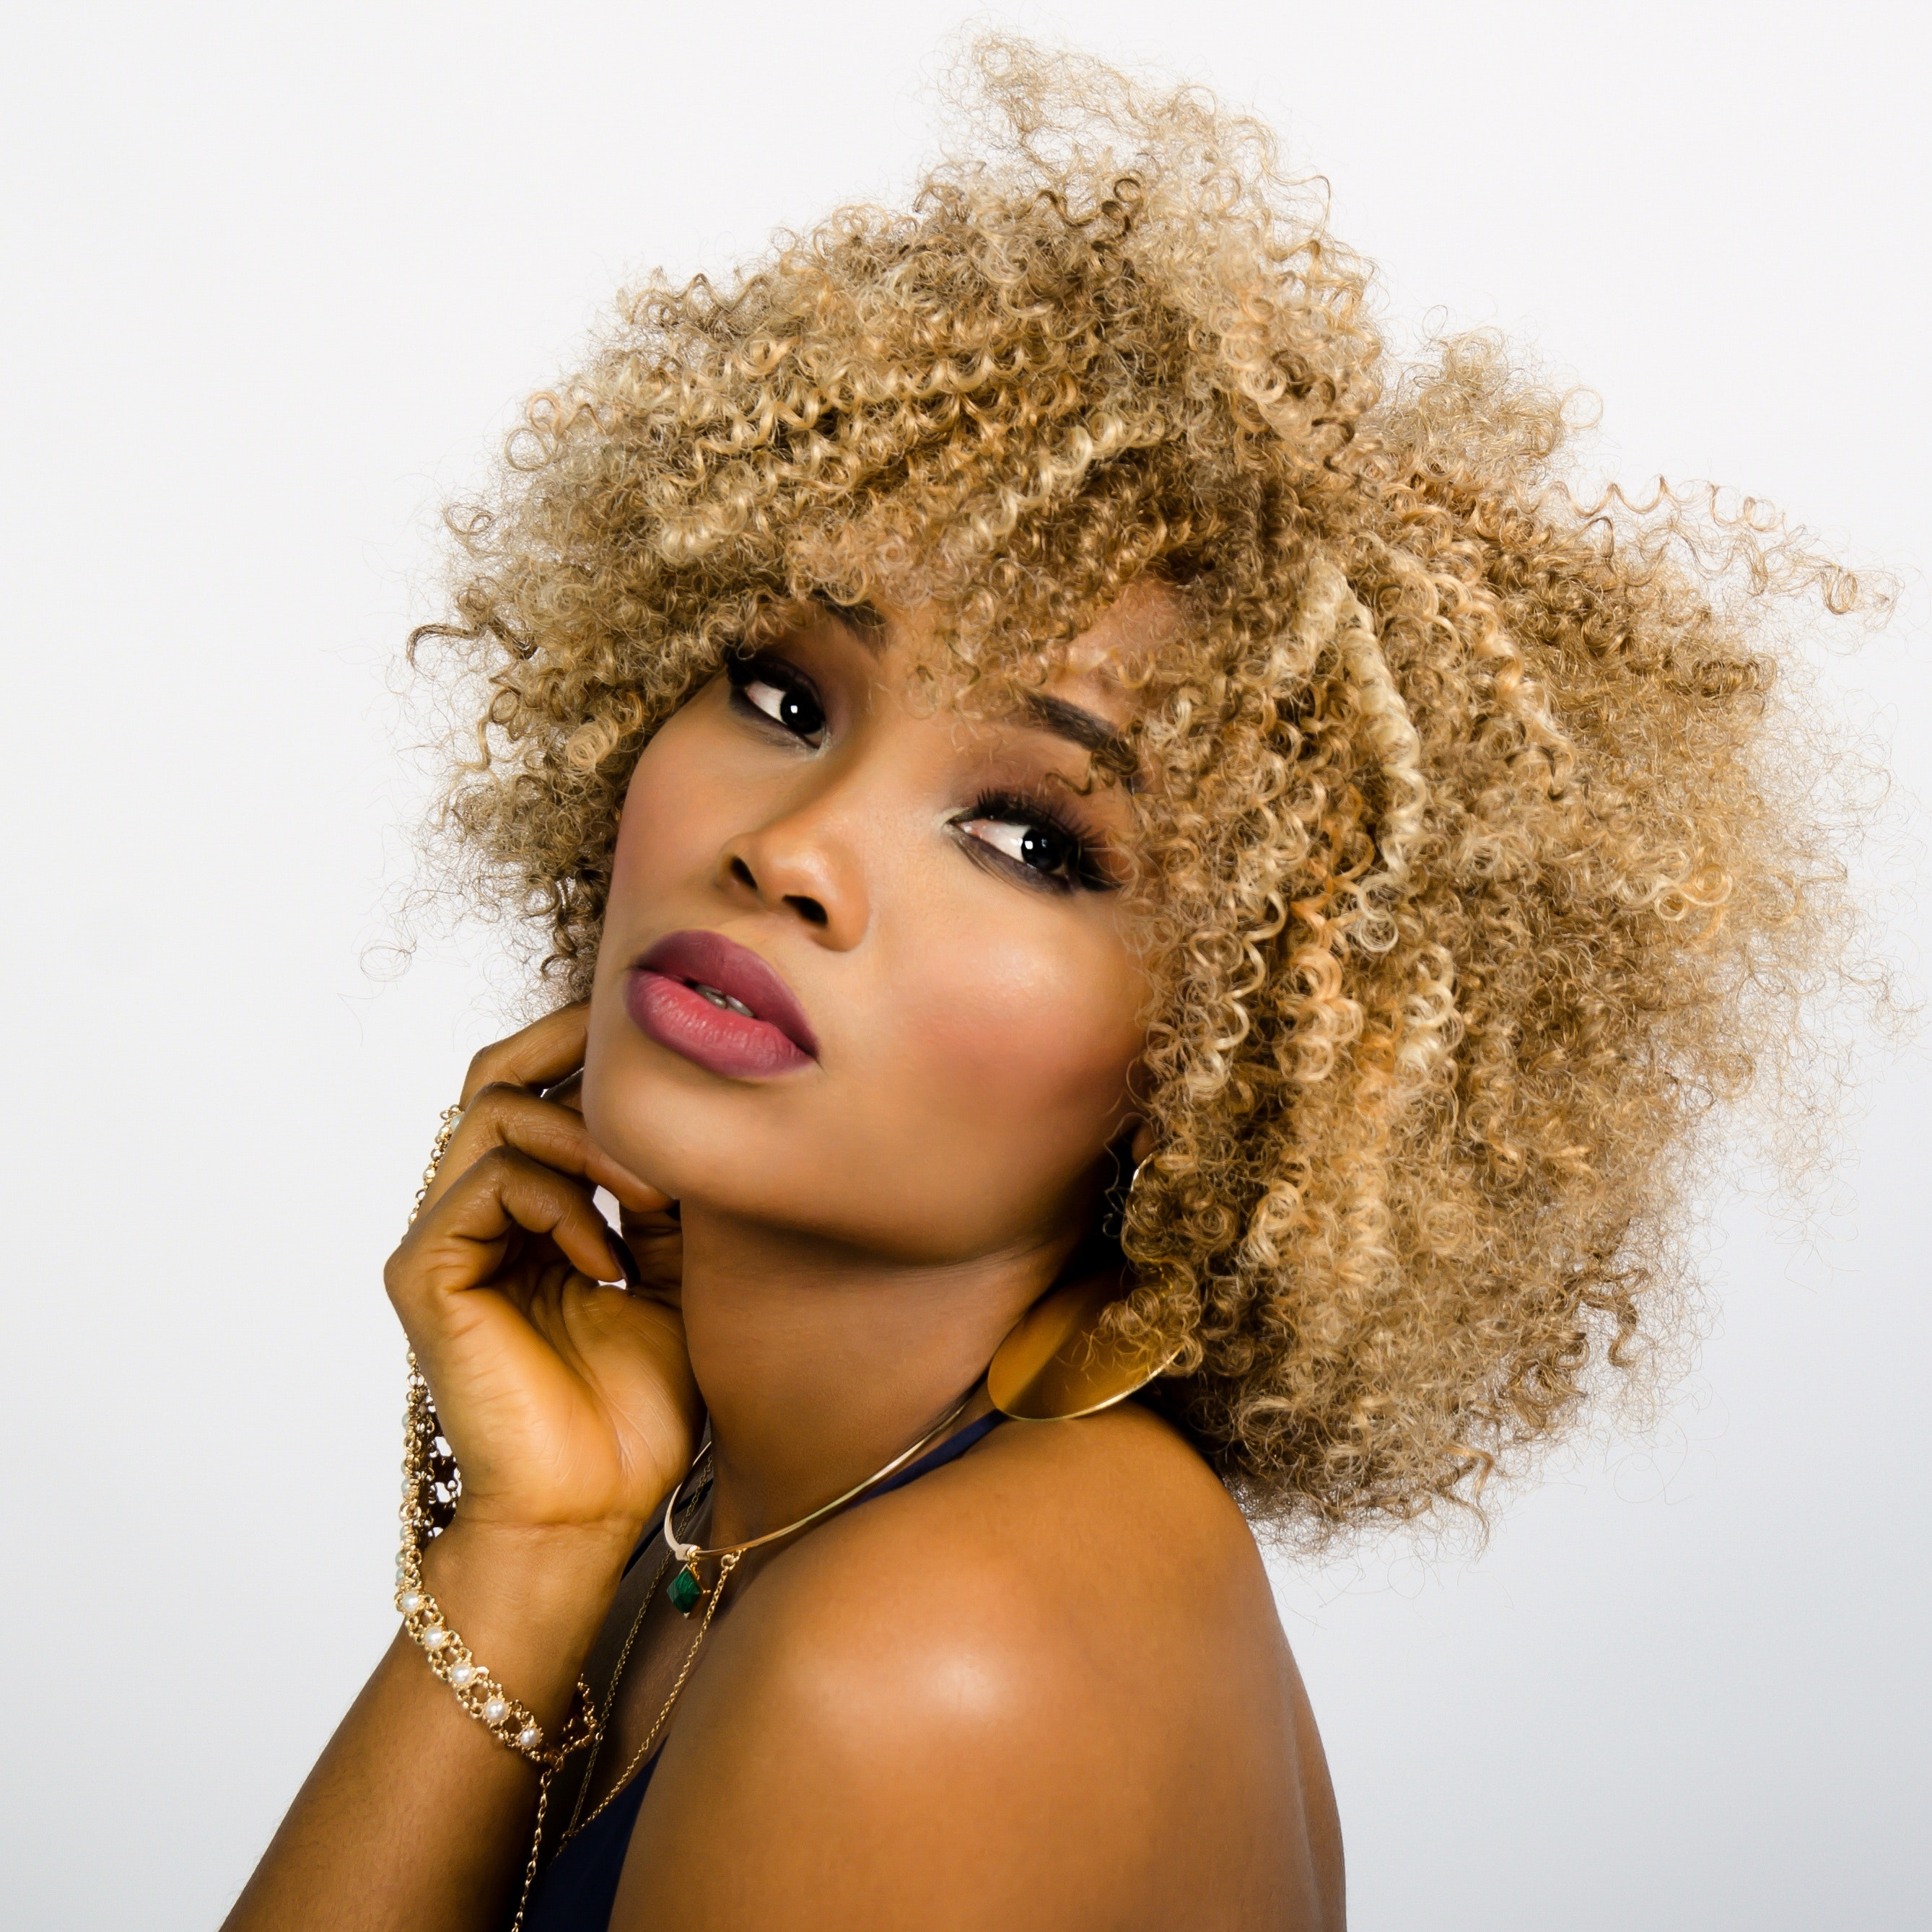 Blonde Afro Curly Hairstyle